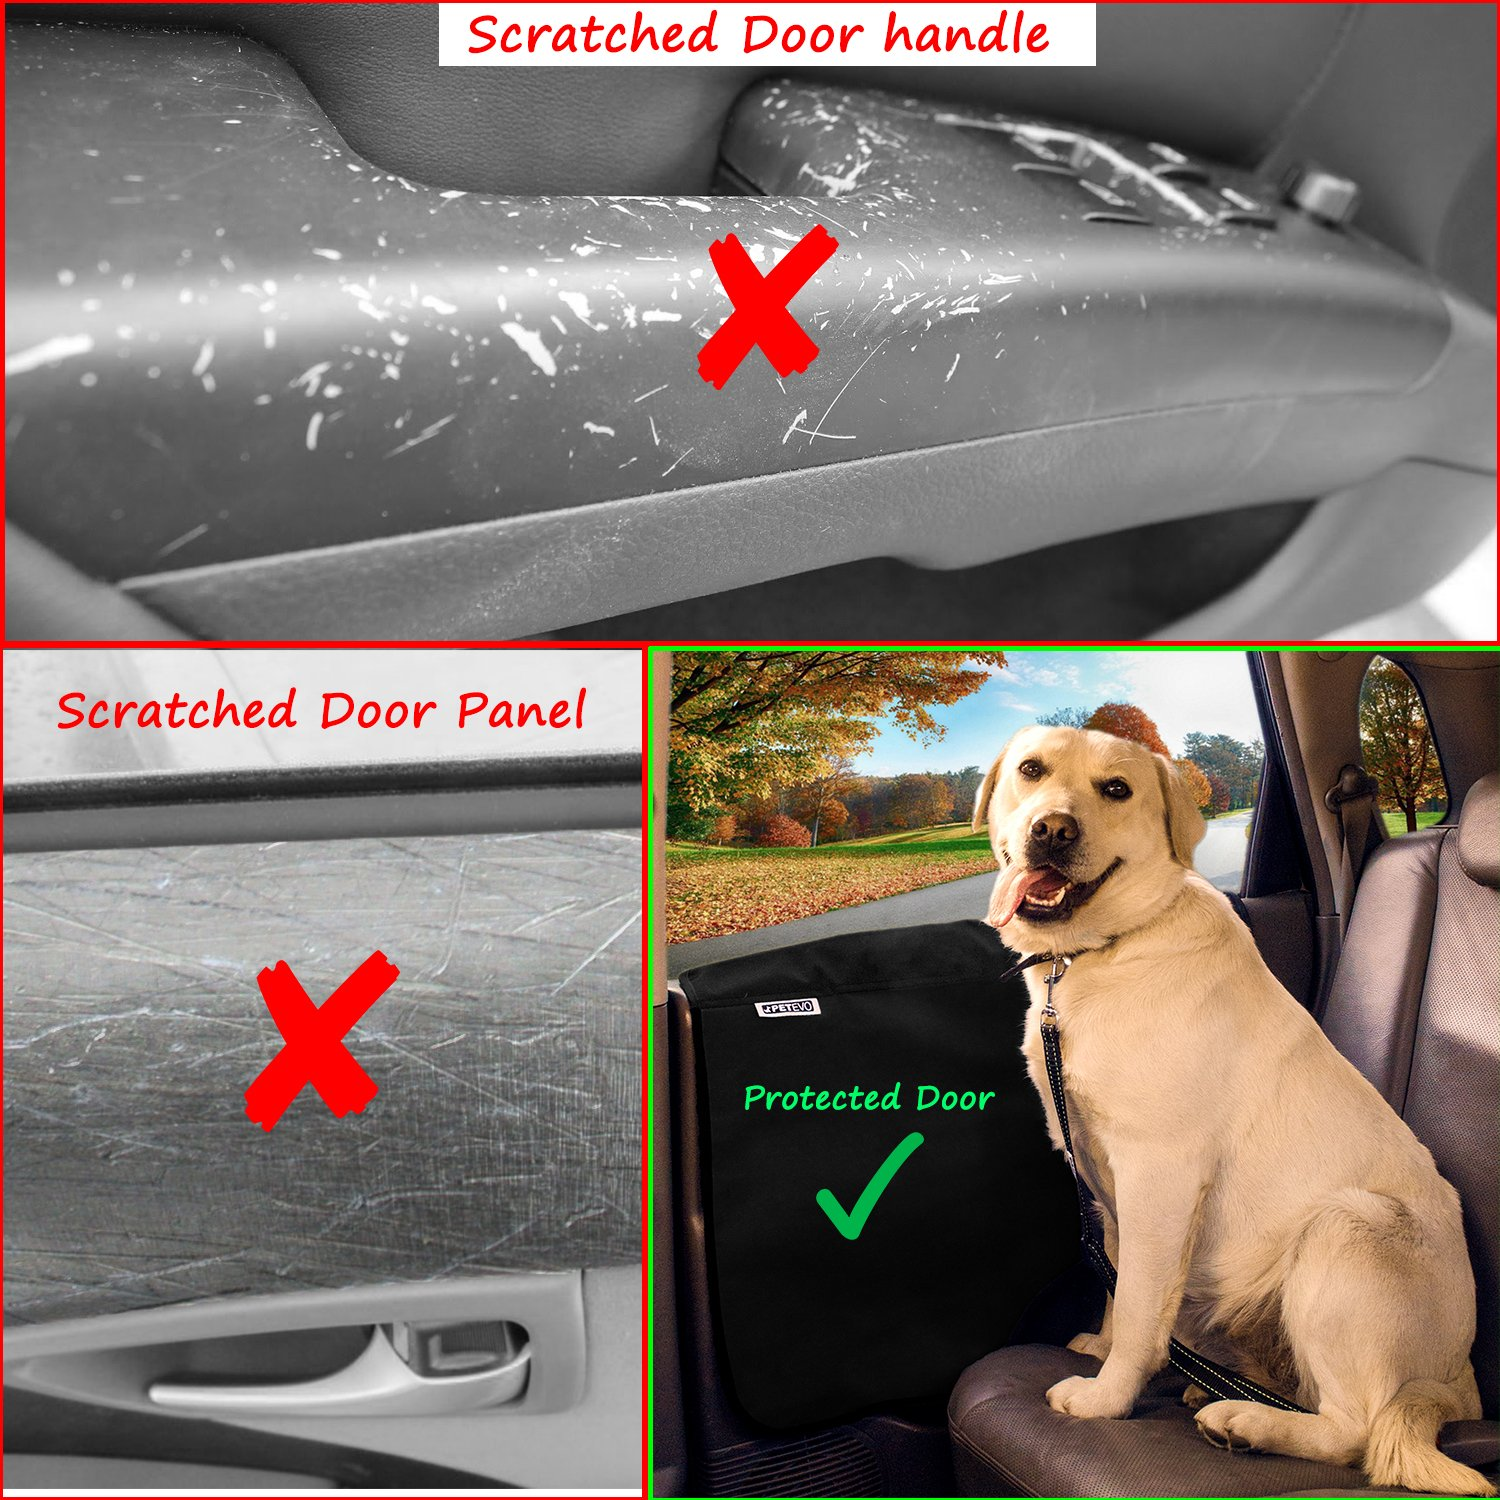 Amazon dog car door protectors protection from pets scratch amazon dog car door protectors protection from pets scratch drooling nails with large safe extra no slip velcro stick for side doors ledge cover eventshaper